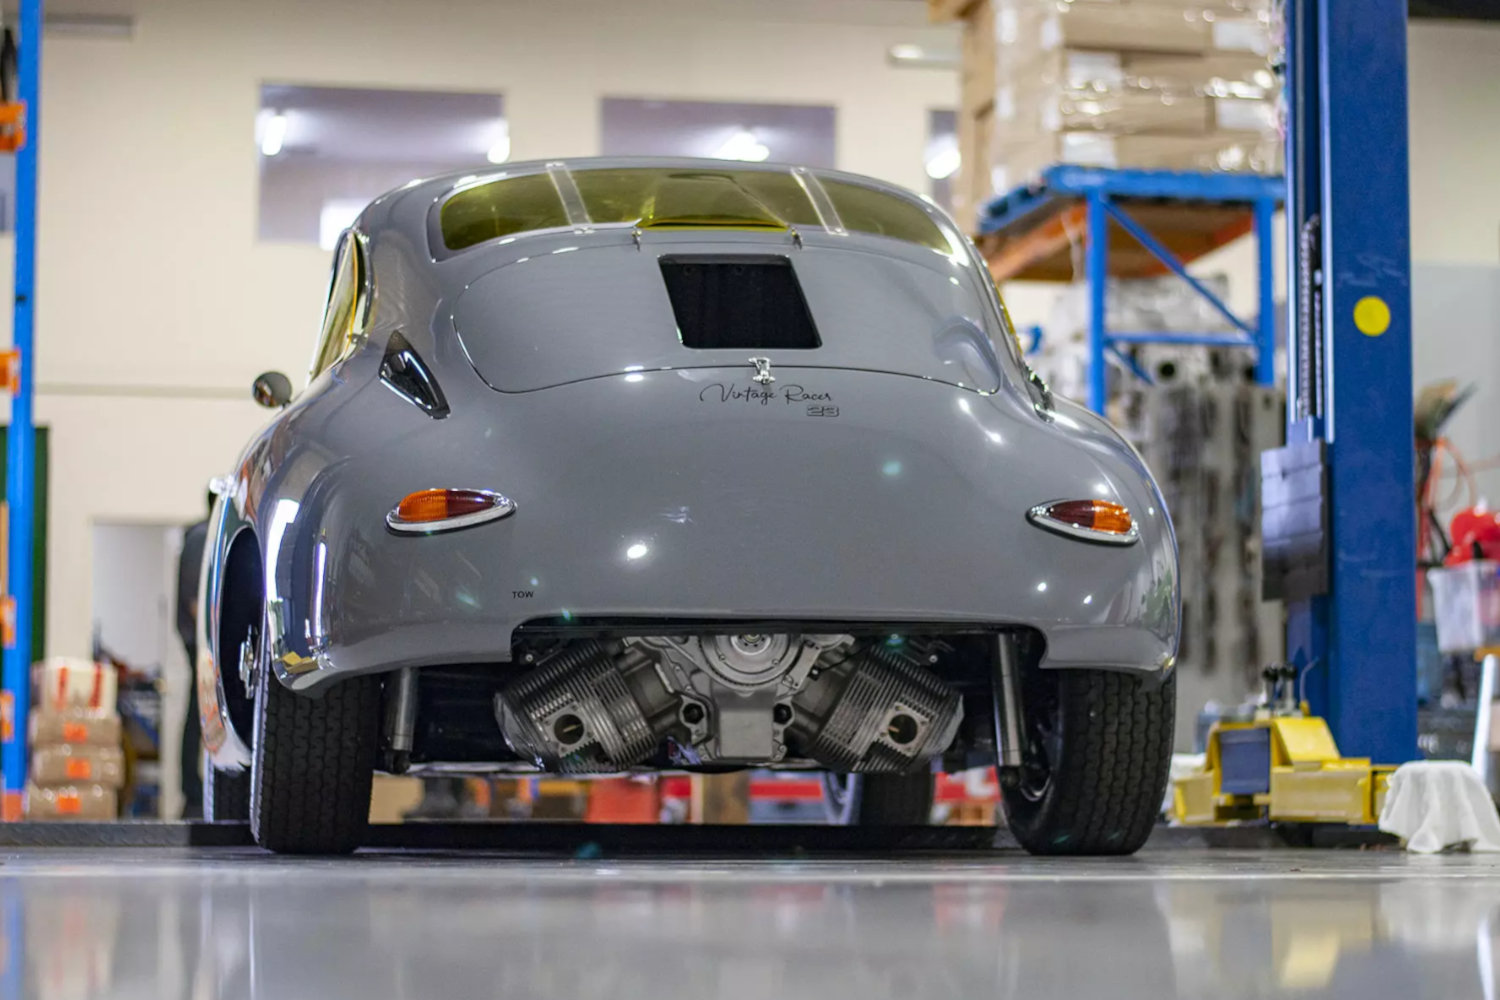 Outlaw Porsche 356 by Emory Motorsports with Radial Motion engine 2